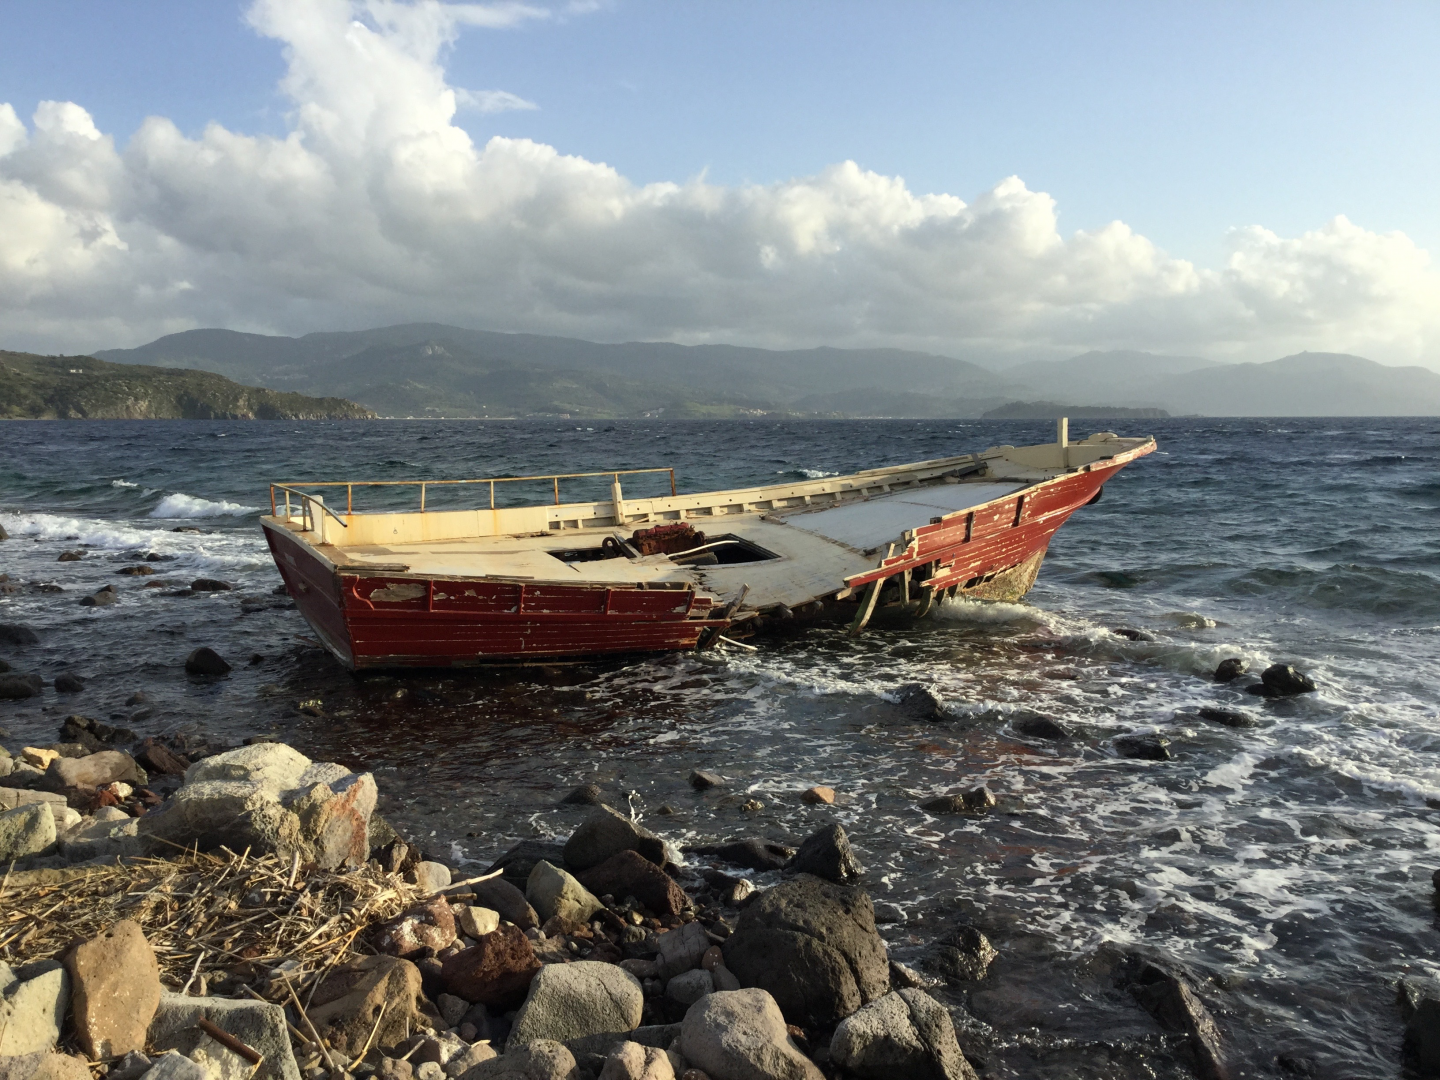 Photo of a broken wooden boat on a rocky shore.